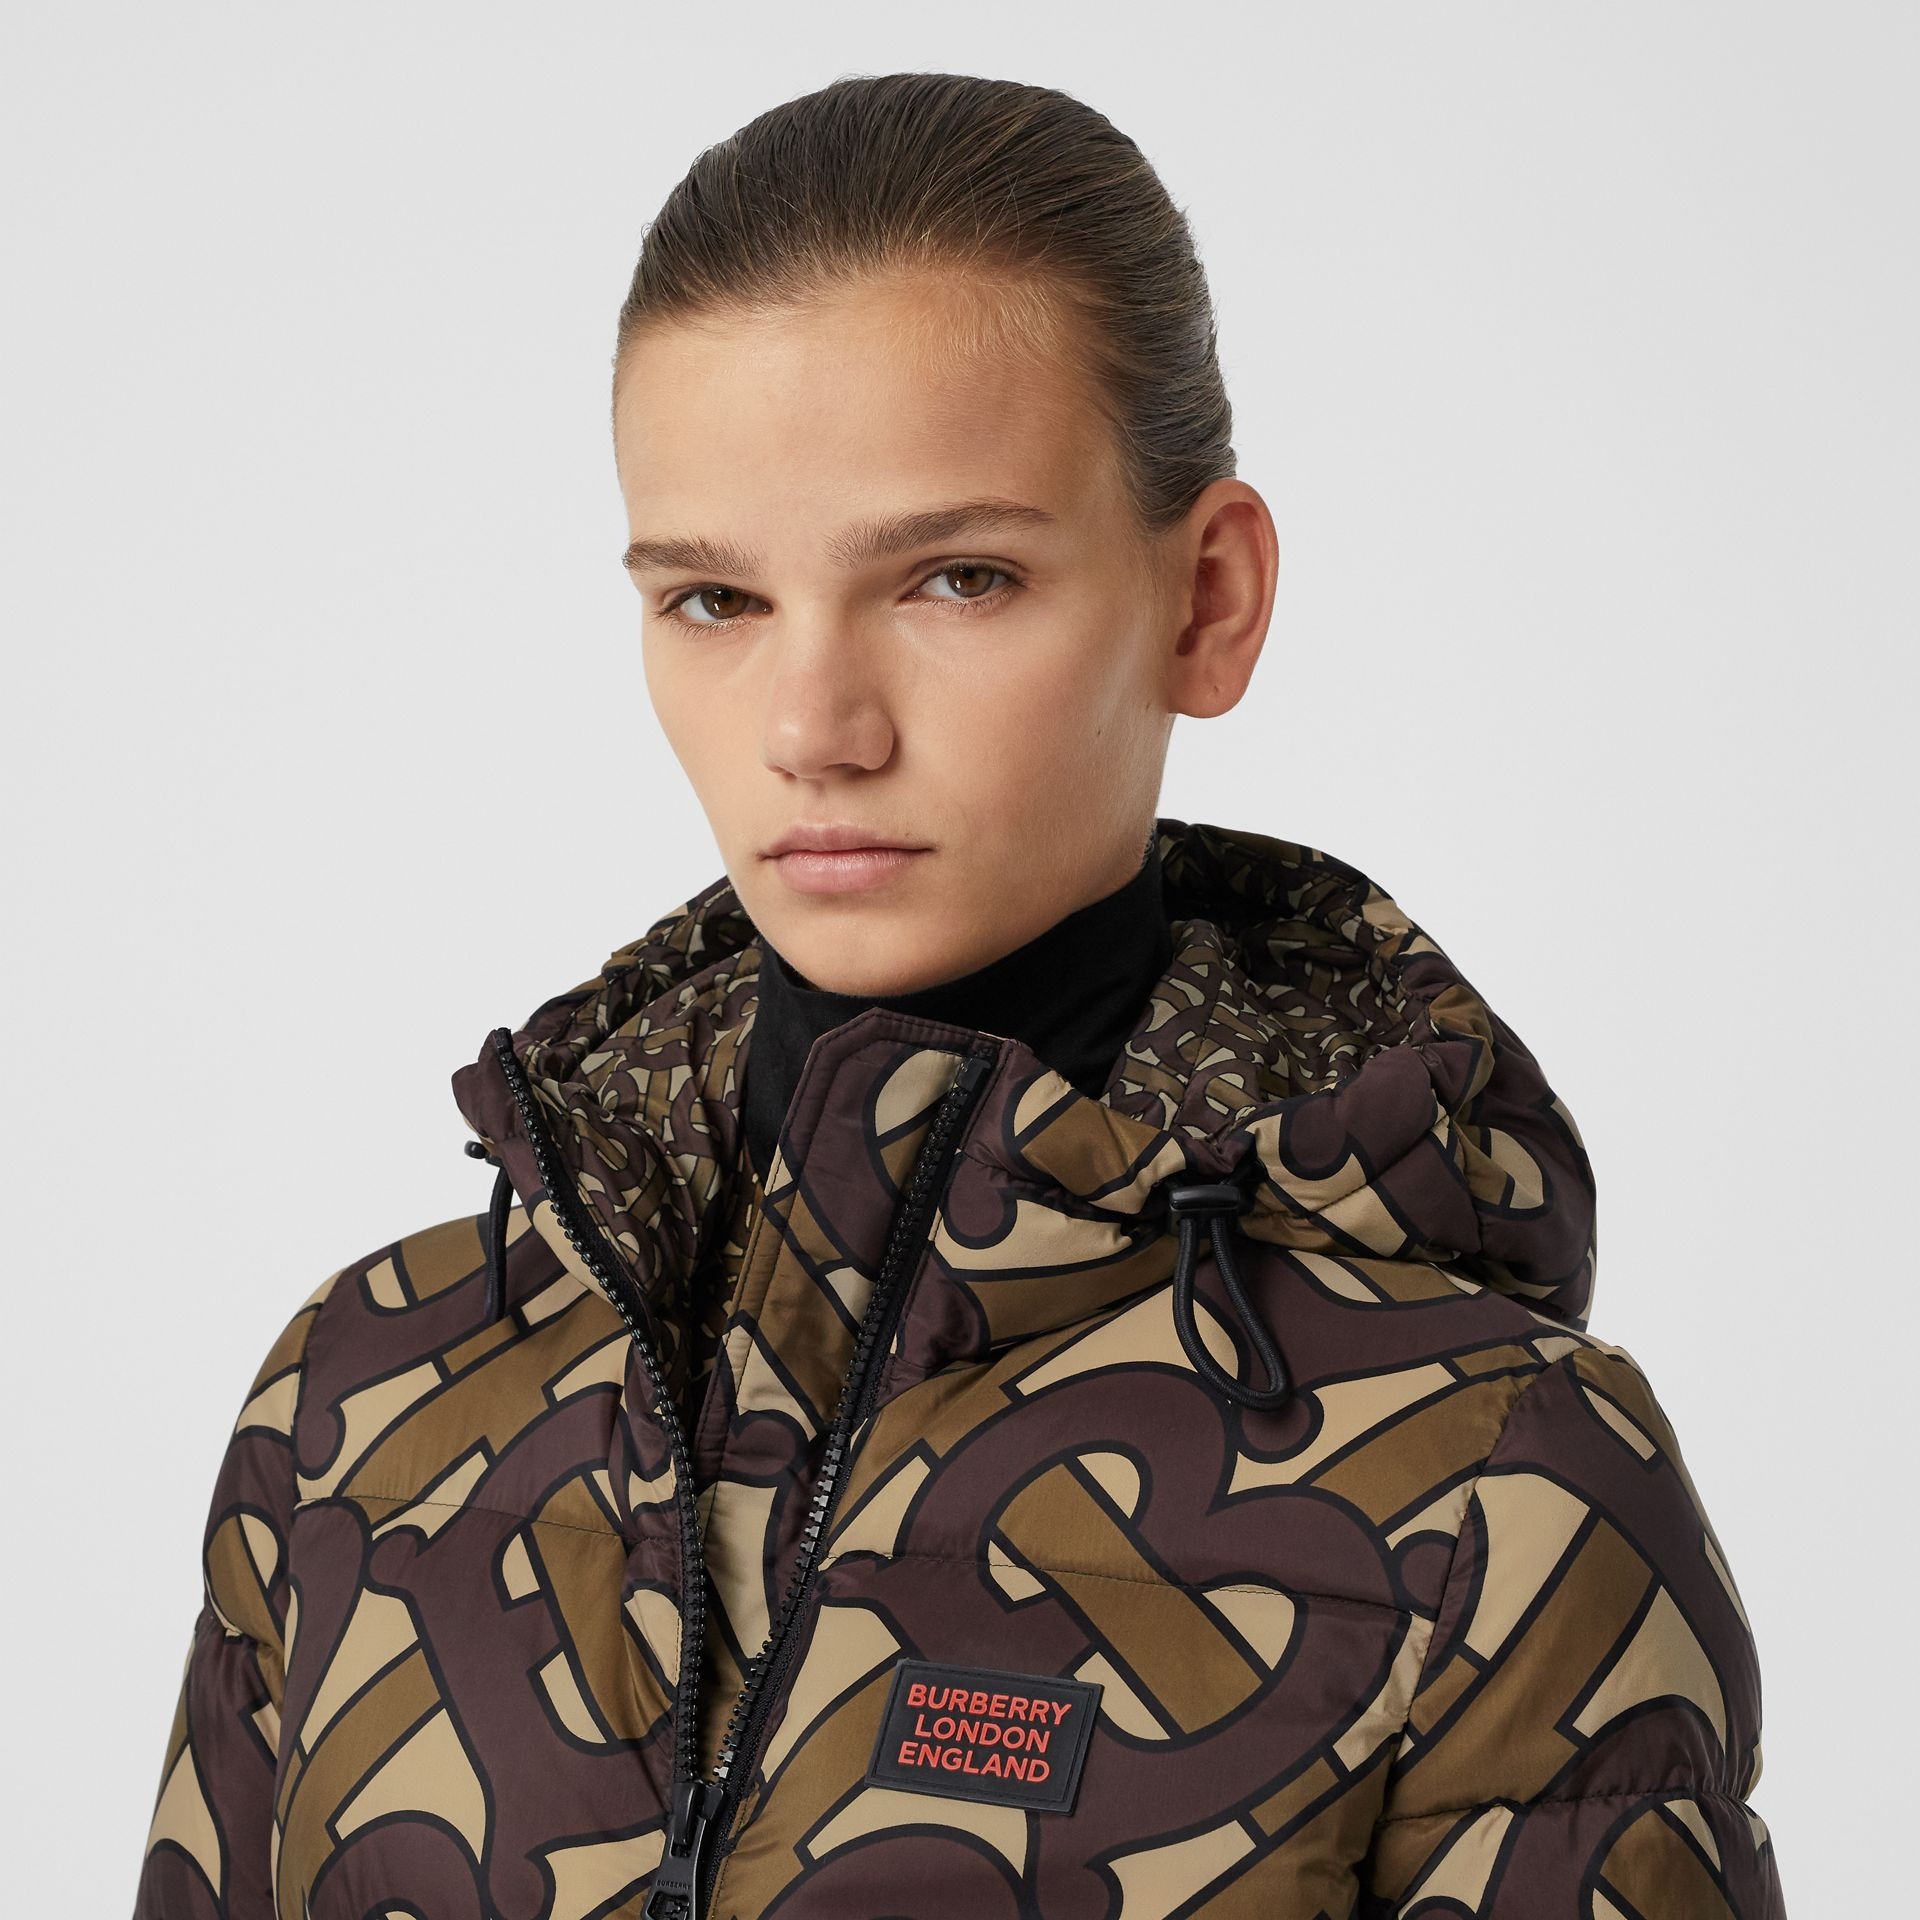 Monogram Print Hooded Puffer Jacket in Bridle Brown - Women | Burberry Singapore - gallery image 1